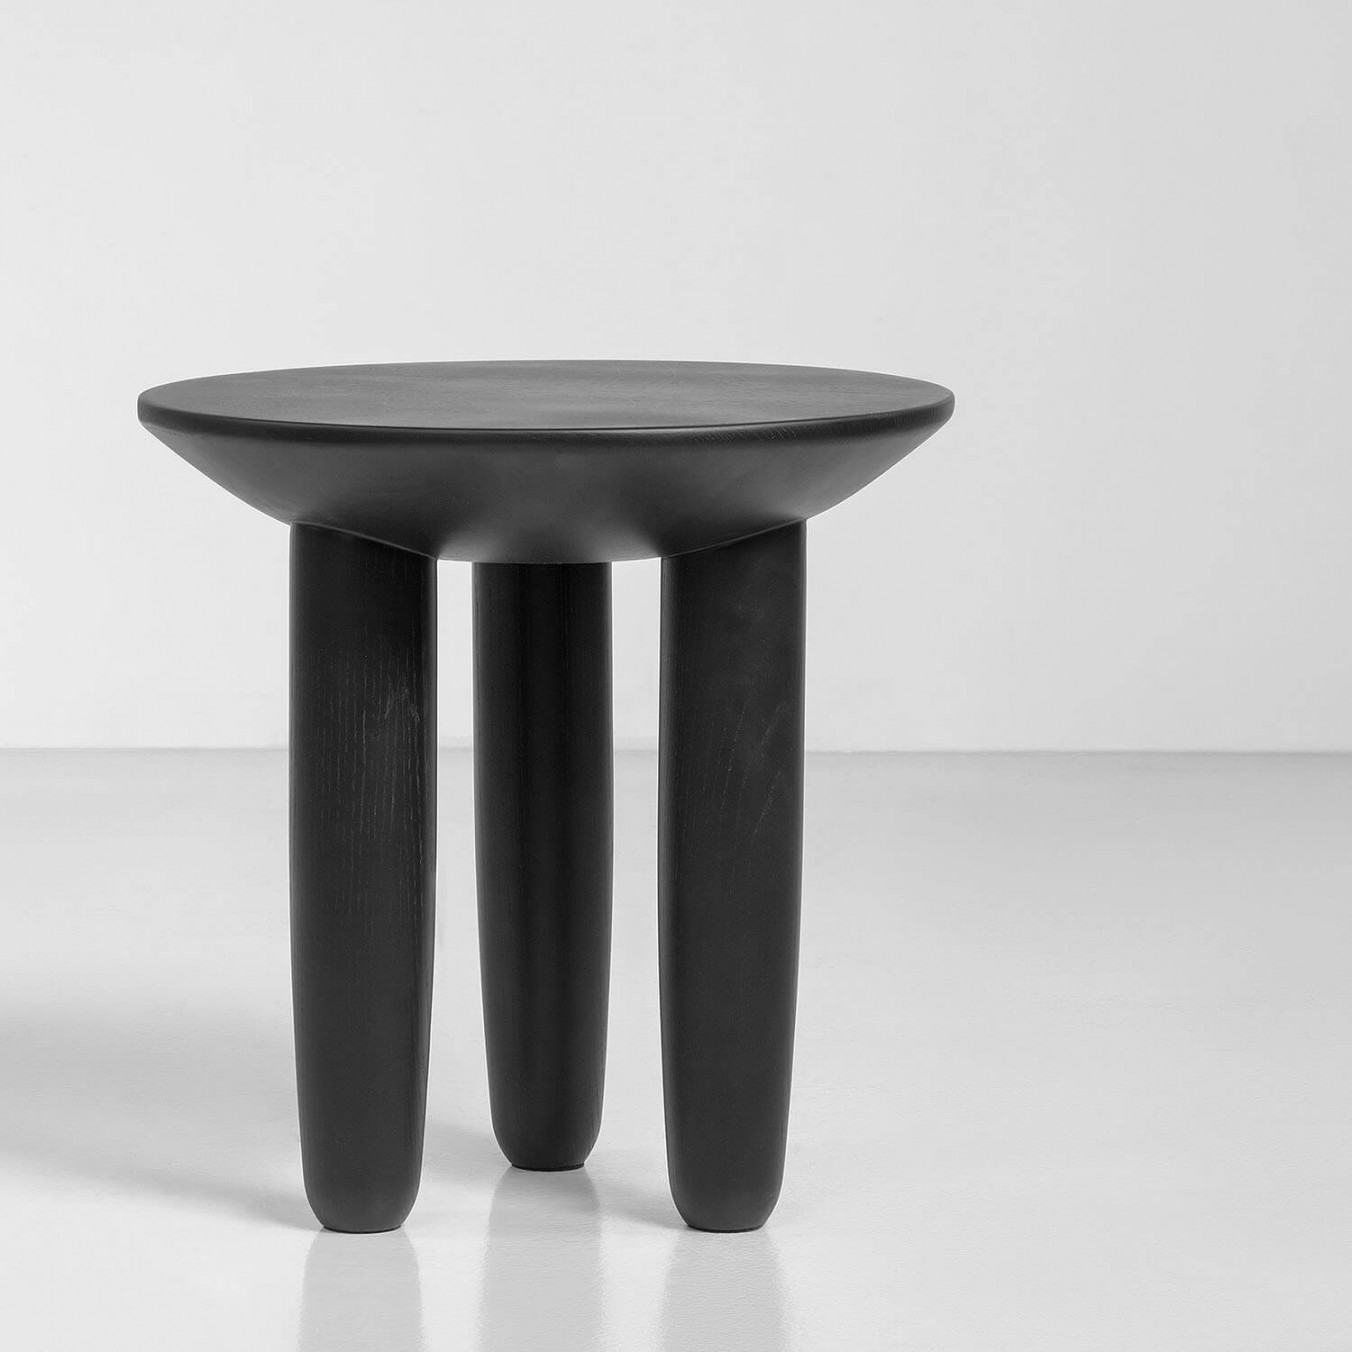 "HRYB set of Coffee tables - ""Hryb"" in Ukrainian means mushroom. After the rain in Polesia, just got out of the ground this small wooden coffee table on 3 legs, on which has already settled comfortably your cup of sweet-smelling coffee.</p>This is a set of both coffee tables however they are also available to purchase separately. 